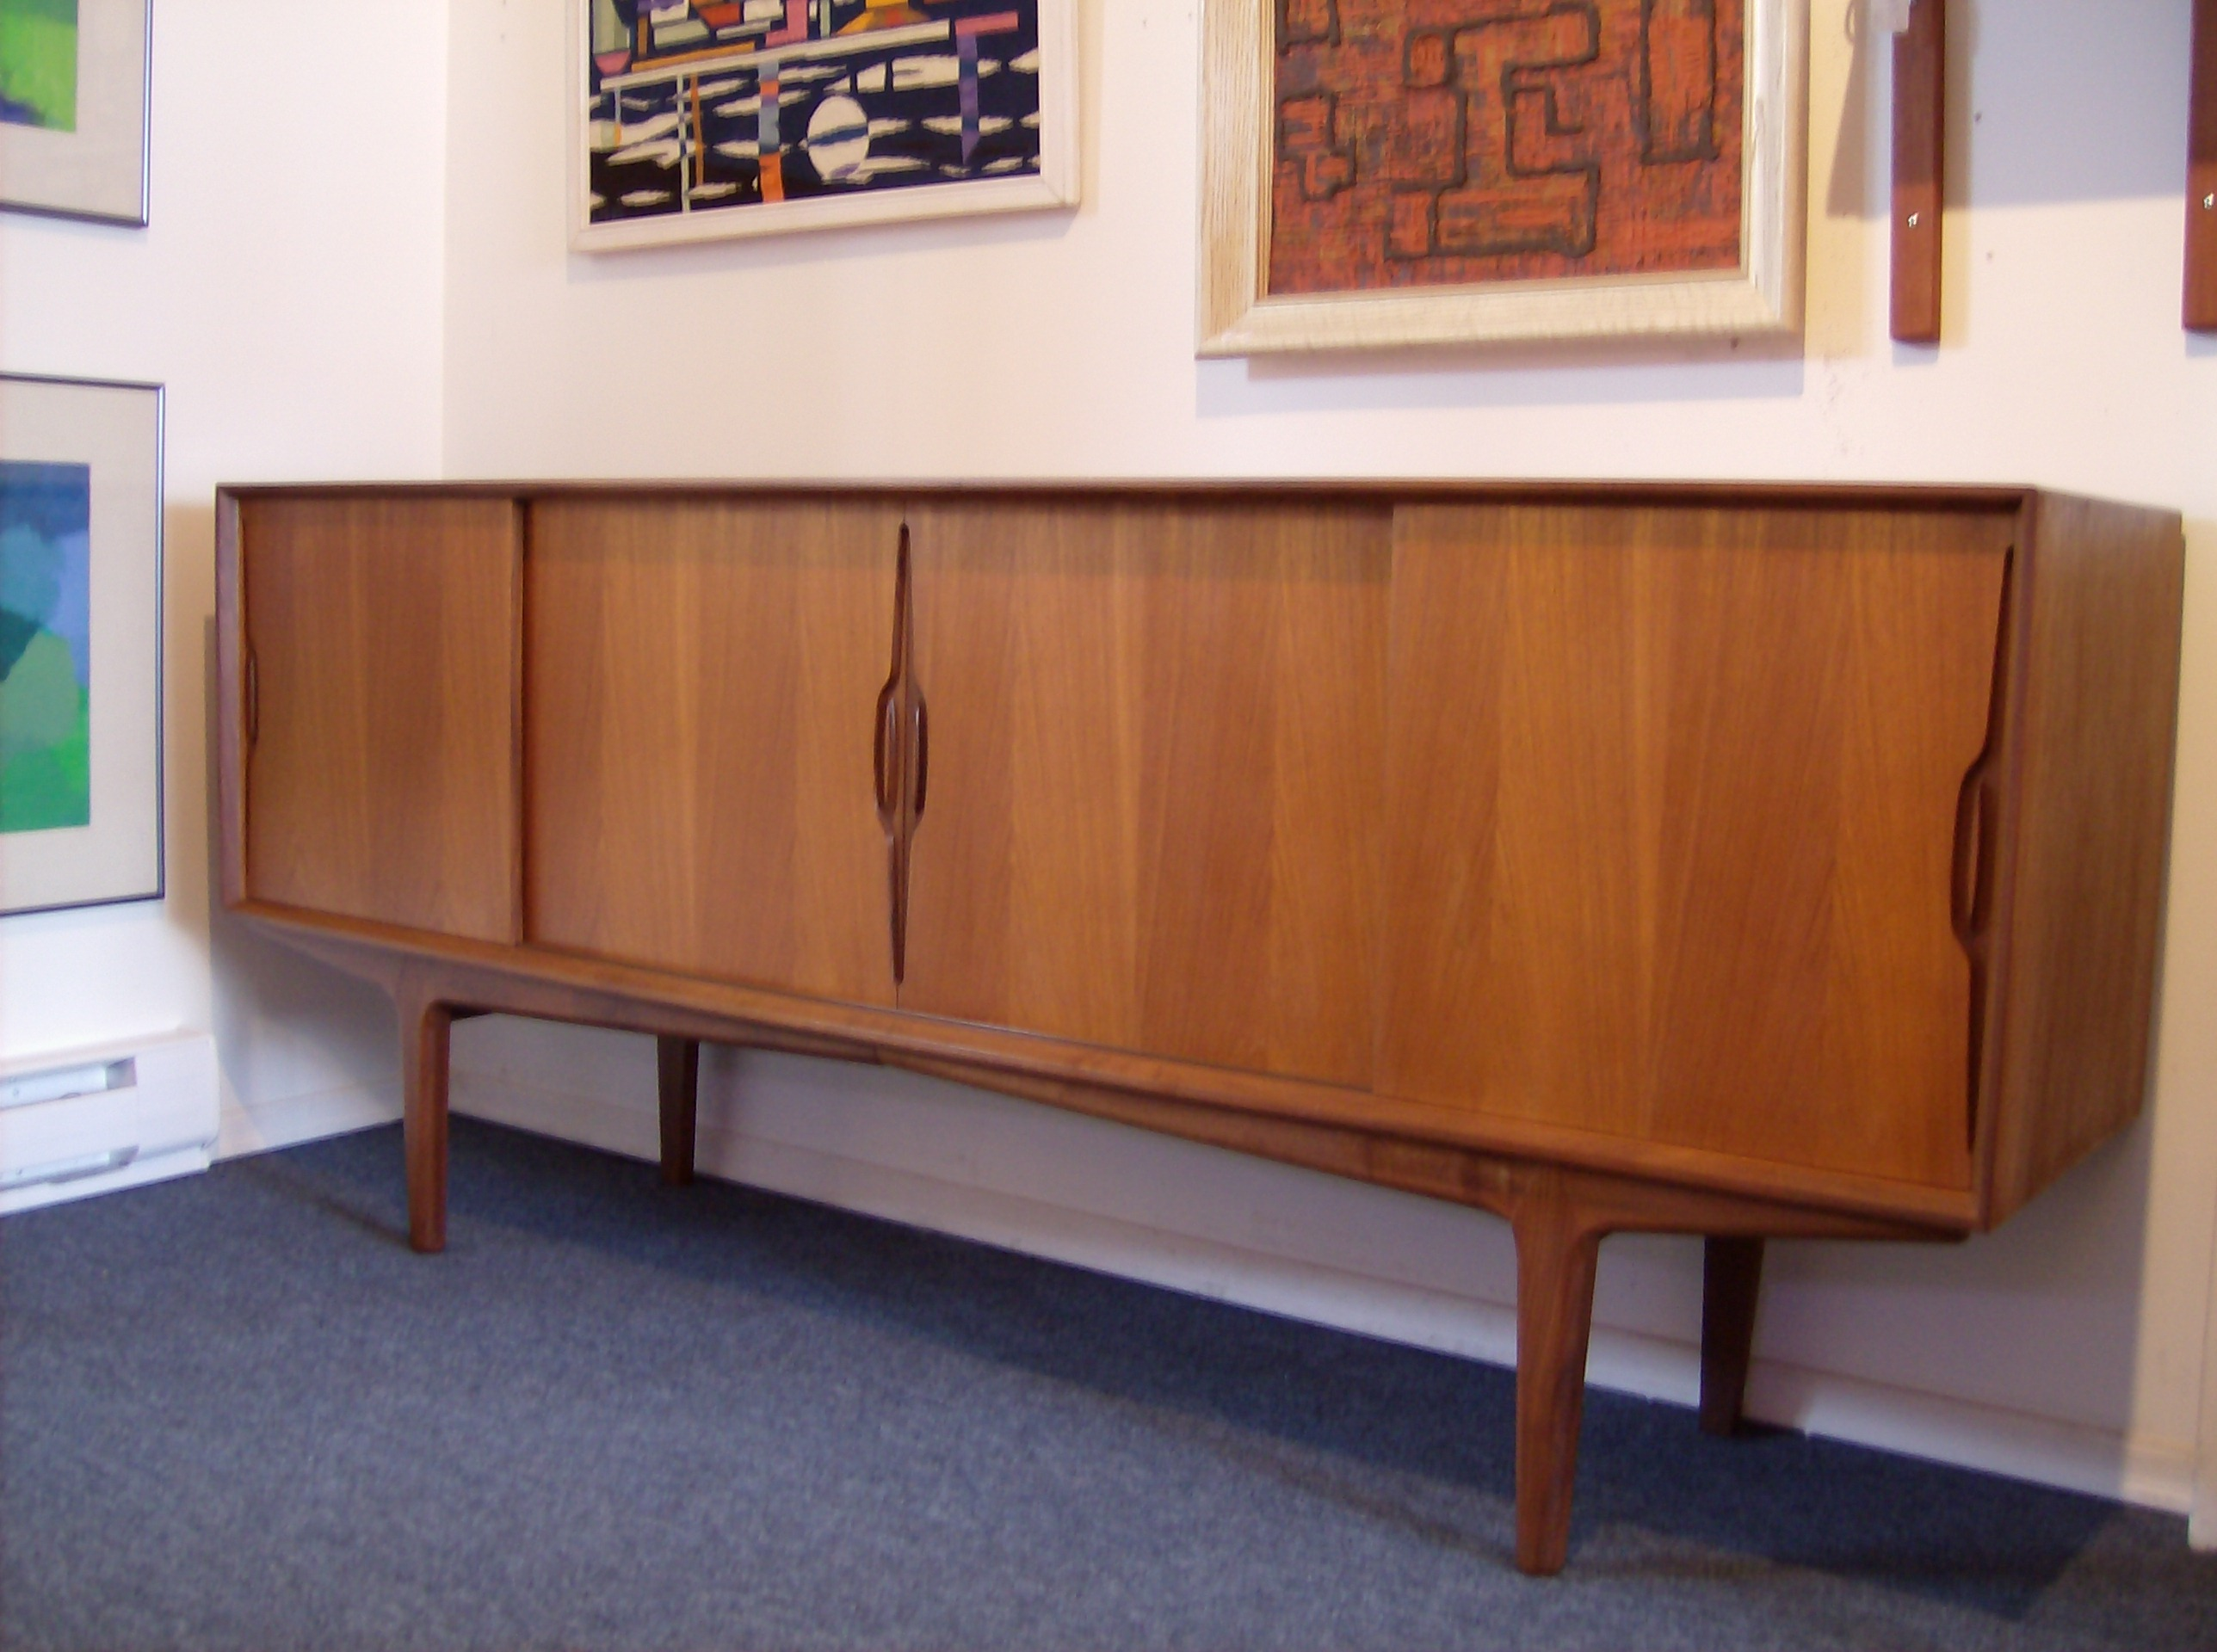 the fabulous find  mid century modern furniture showroom in  - exquisite midcentury modern danish teak credenza  incredibly sculptural every detail is perfection